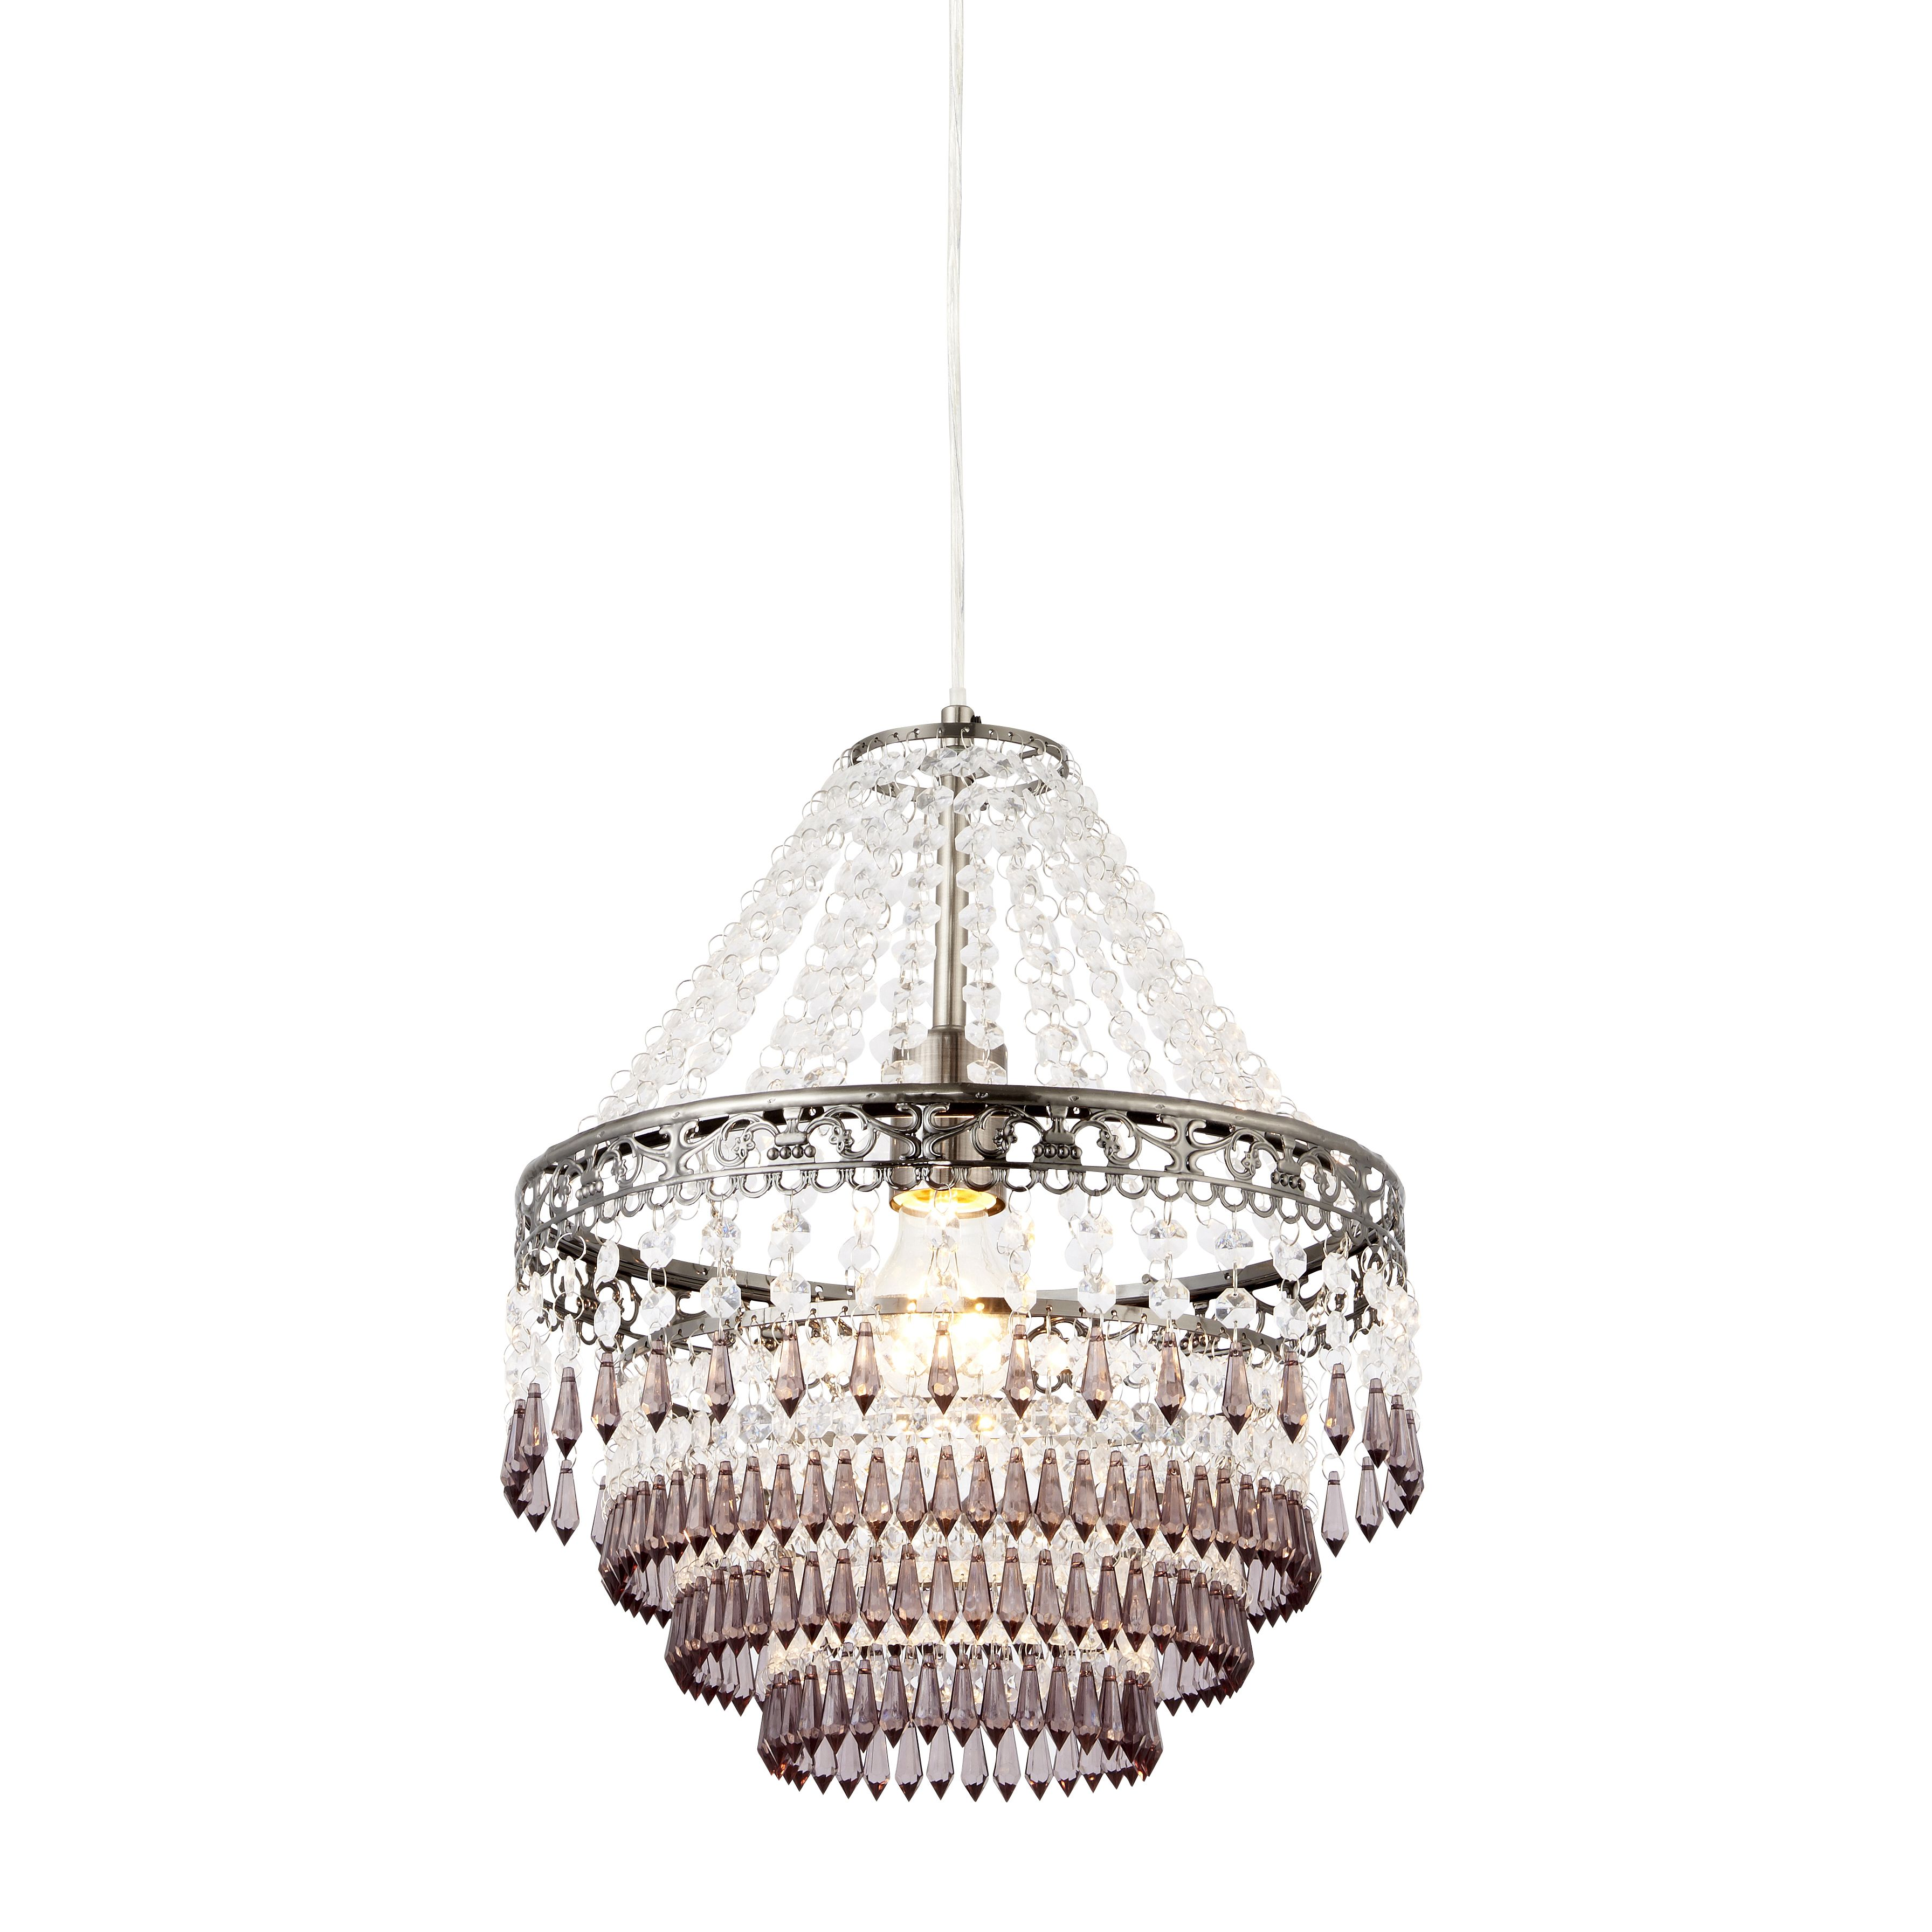 Corinna crystal beaded pewter pendant ceiling light departments corinna crystal beaded pewter pendant ceiling light departments diy at bq aloadofball Image collections